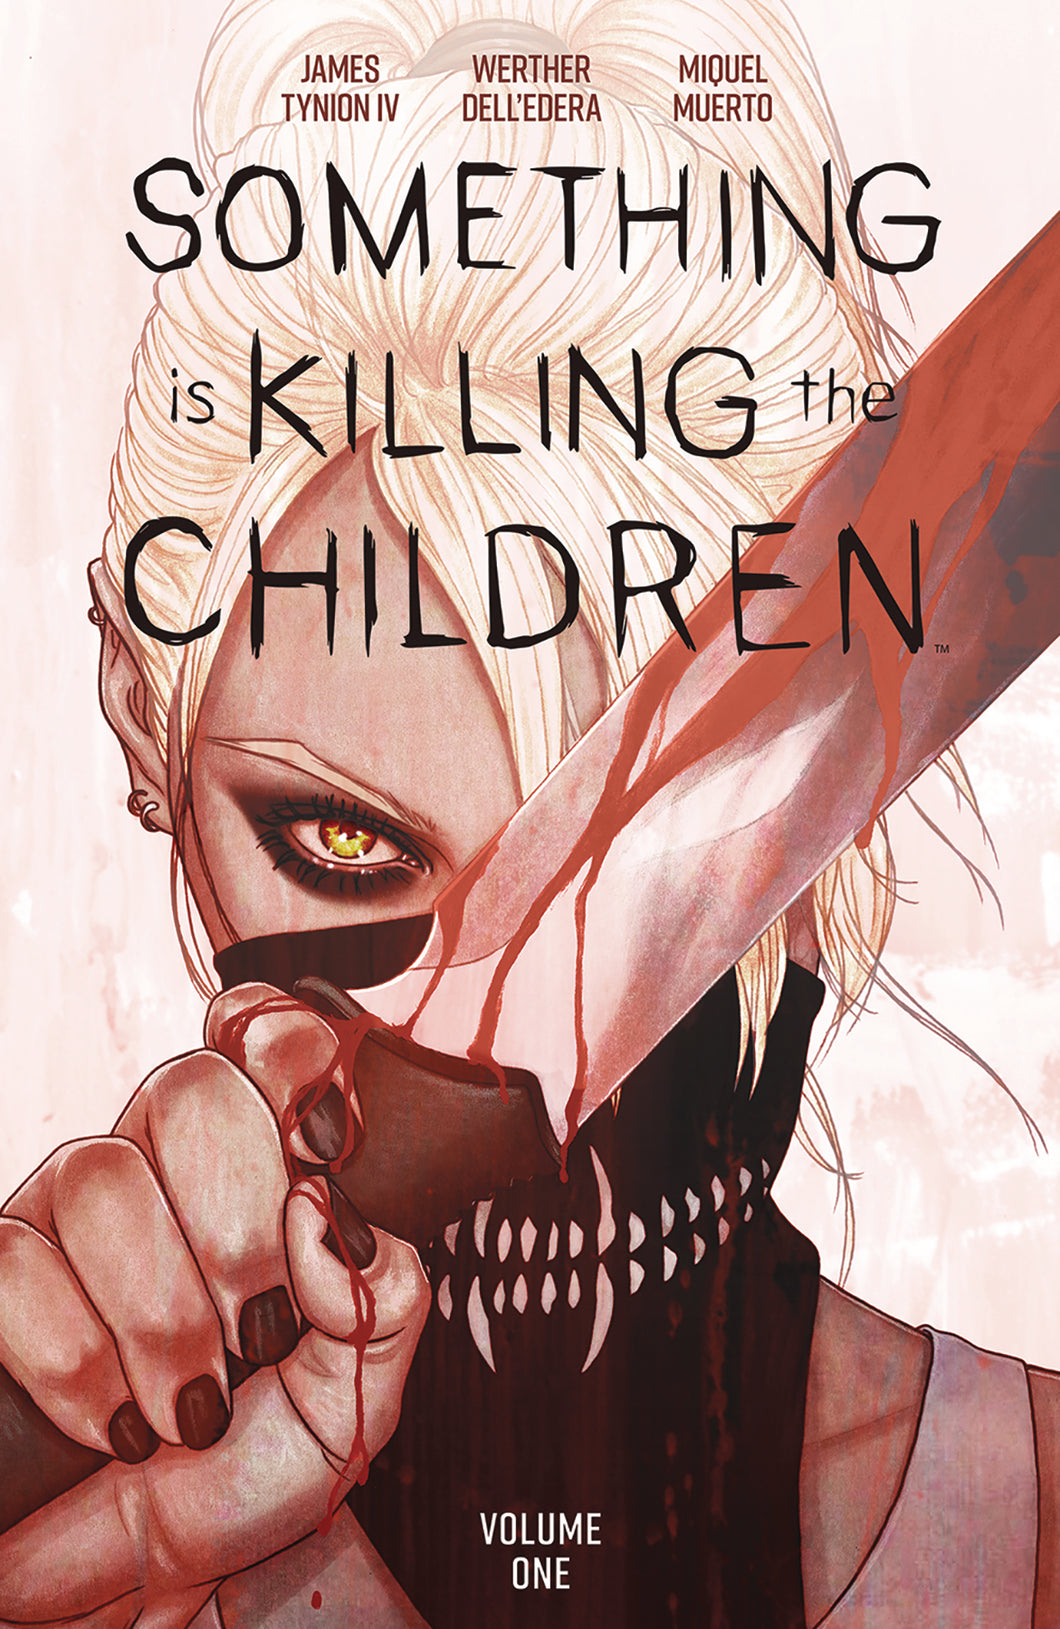 SOMETHING IS KILLING CHILDREN TP VOL 01 DISCOVER NOW (C: 0-1